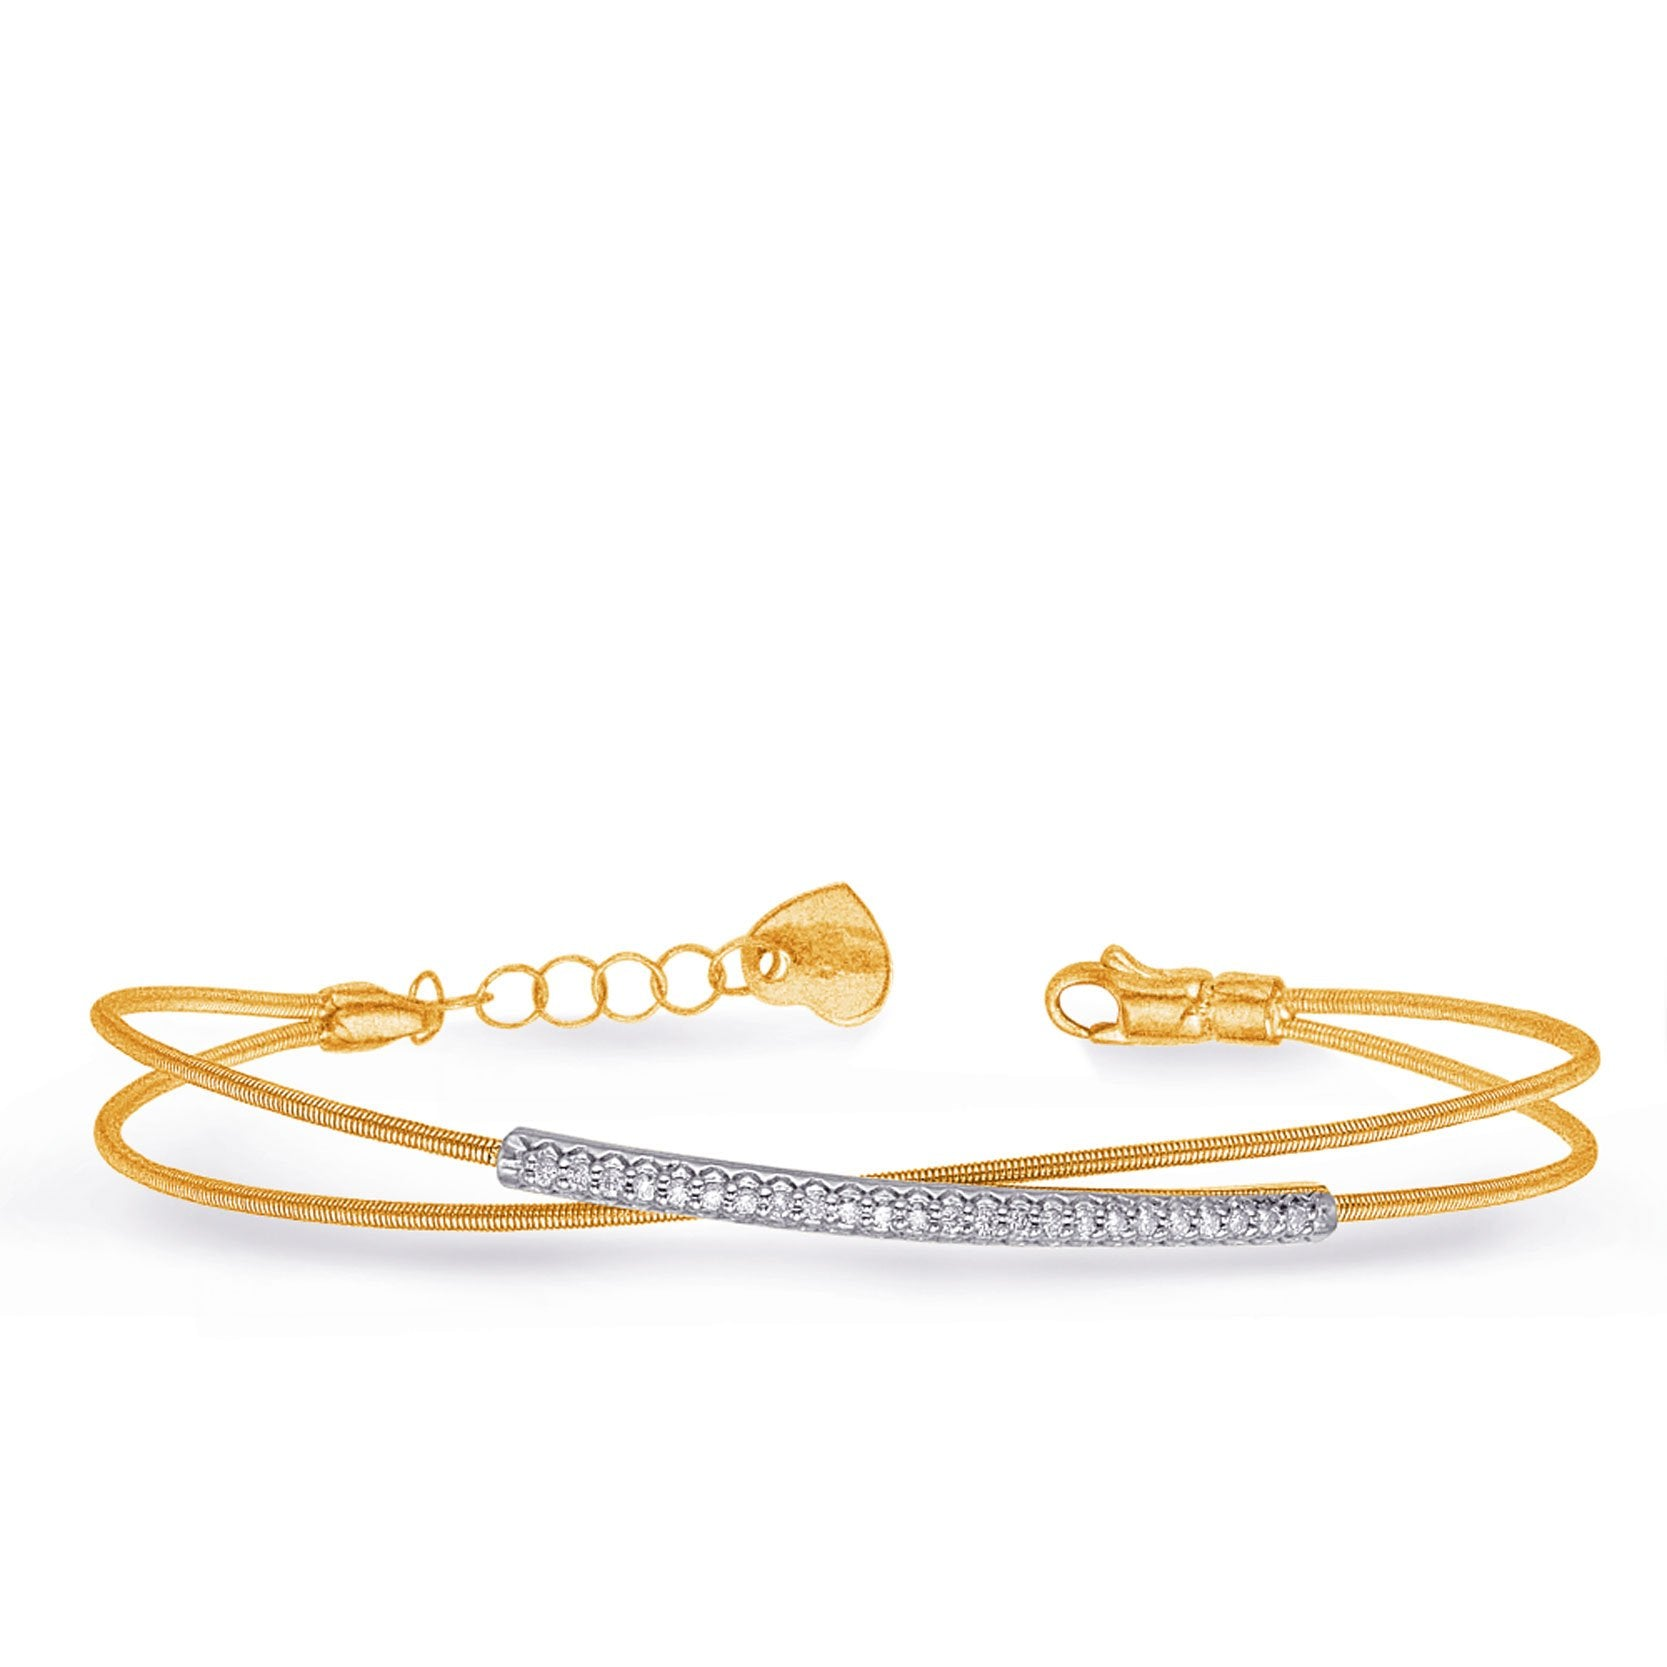 bracelet White & Yellow Gold Bangle Italian - DEMO from welch and company jewelers near syracuse ny